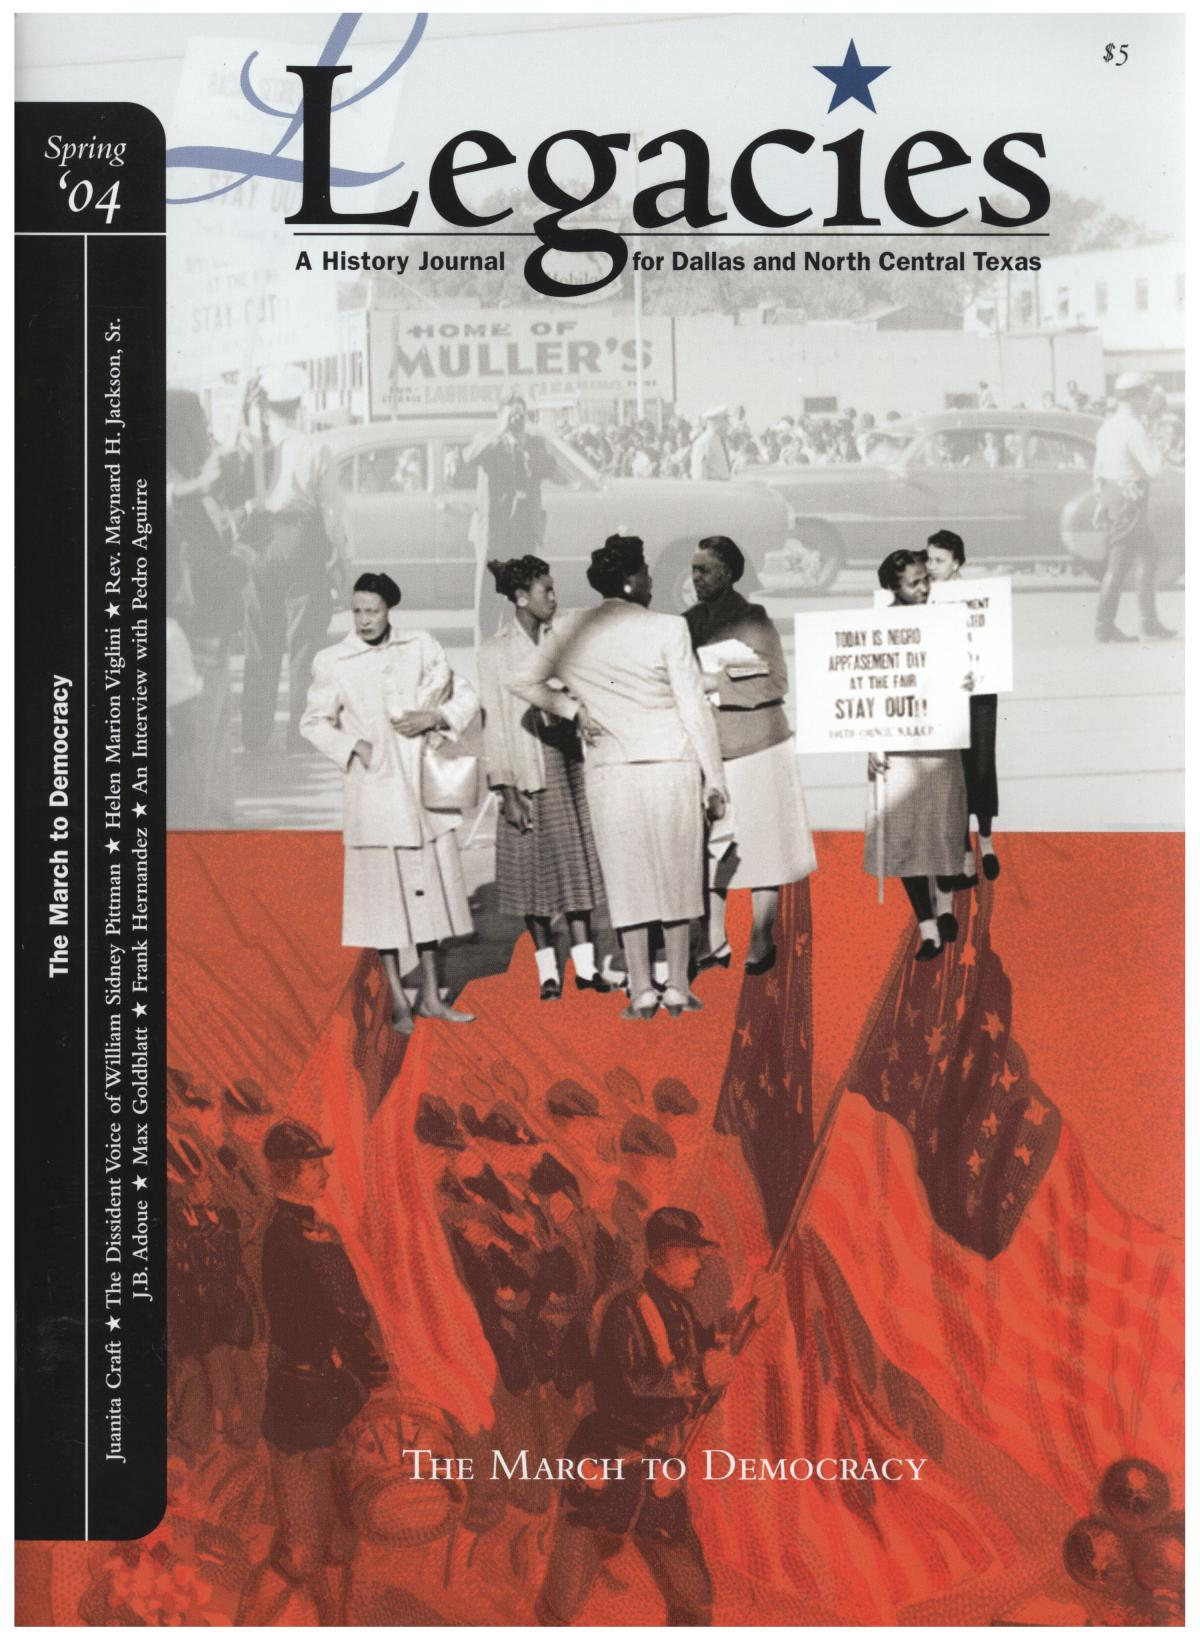 Legacies: A History Journal for Dallas and North Central Texas, Volume 16, Number 01, Spring, 2004                                                                                                      Front Cover